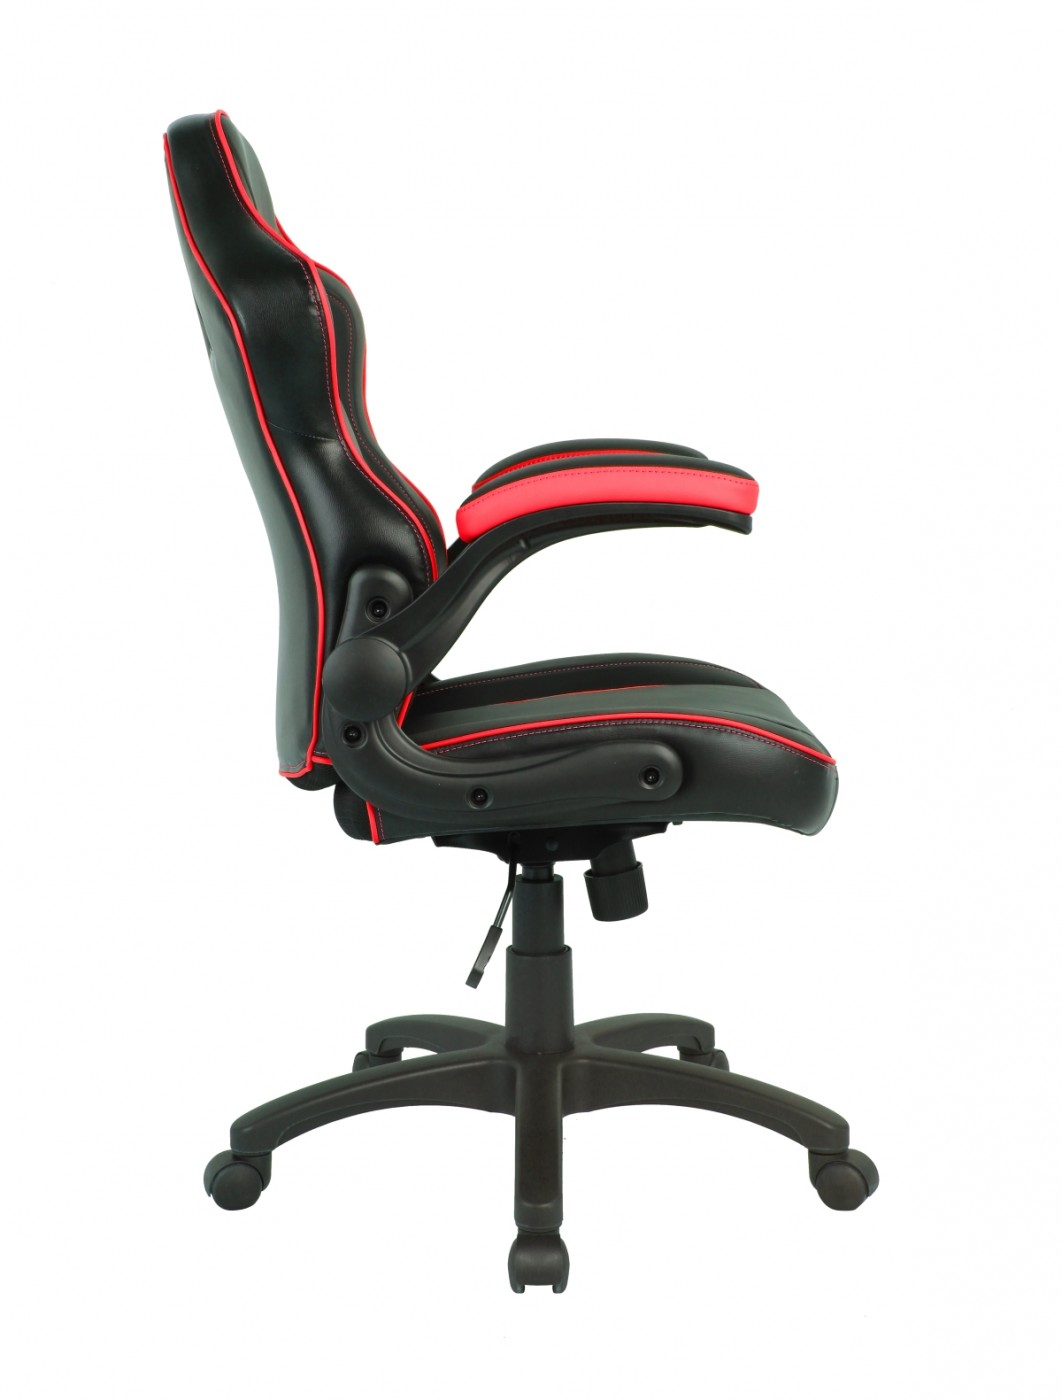 Gaming Chairs - Eliza Tinsley Predator Executive Office Chairs BCP/H600/BK/RD  sc 1 st  121 Office Furniture & Eliza Tinsley Predator Executive Gaming Office Chair BCP/H600/BKRD ...